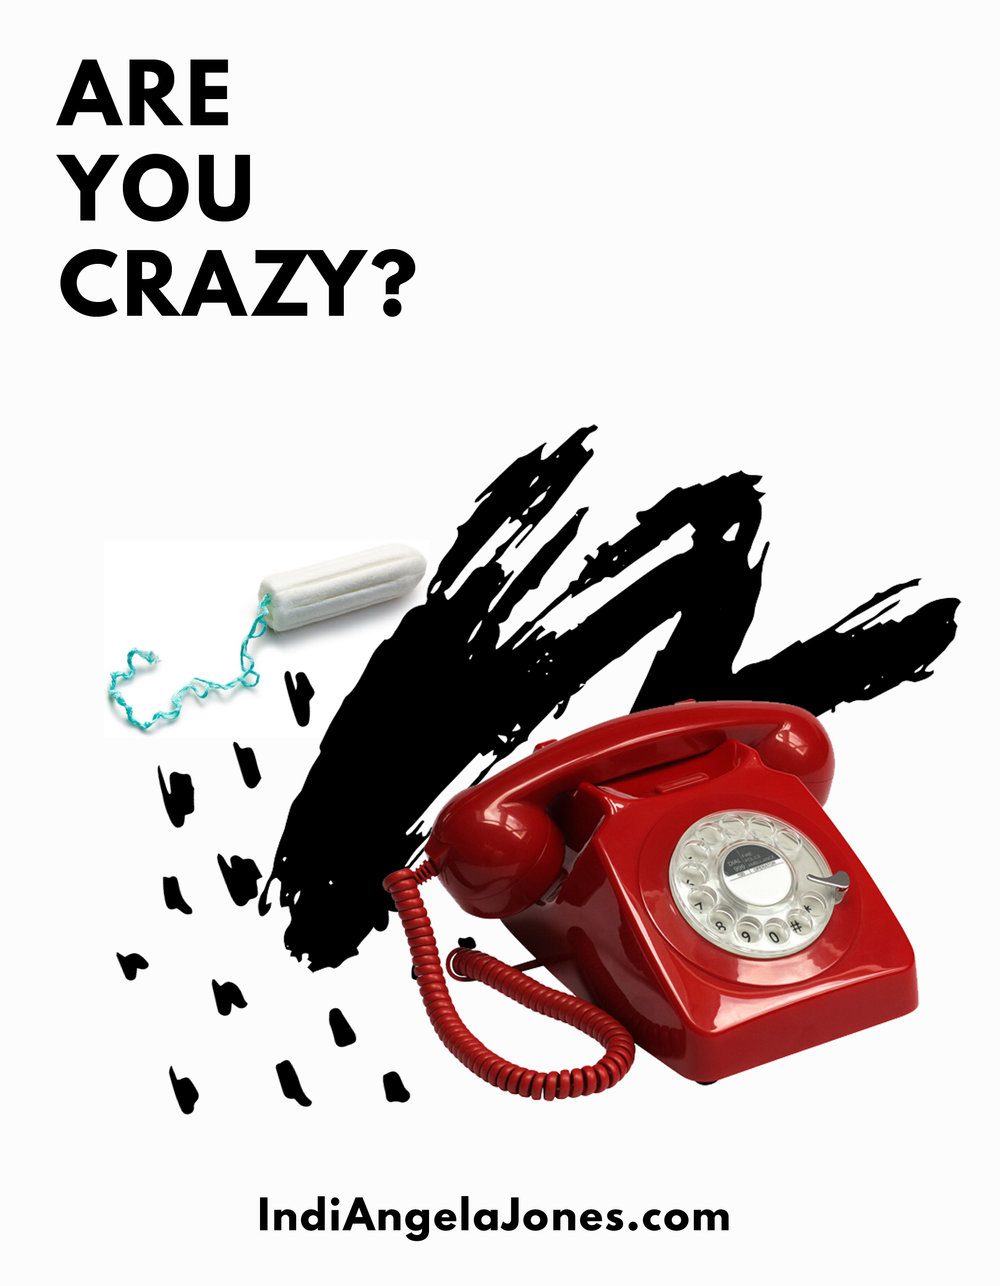 How to tell if you're crazy.